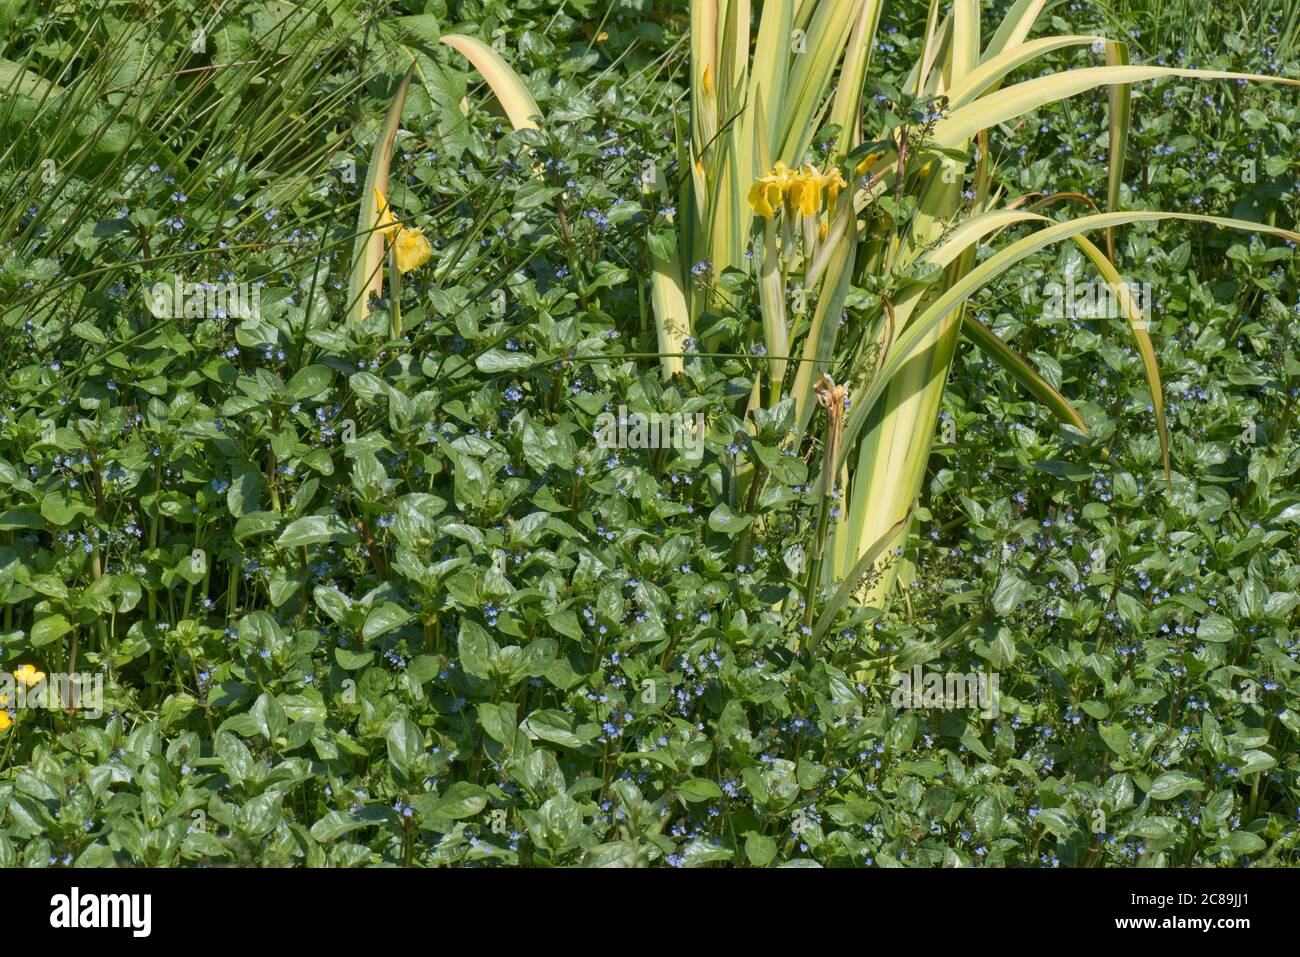 European speedwell or brooklime (Veronica beccubunga) with other marginal aquatic plants in a natural field spring, Berkshire, May Stock Photo